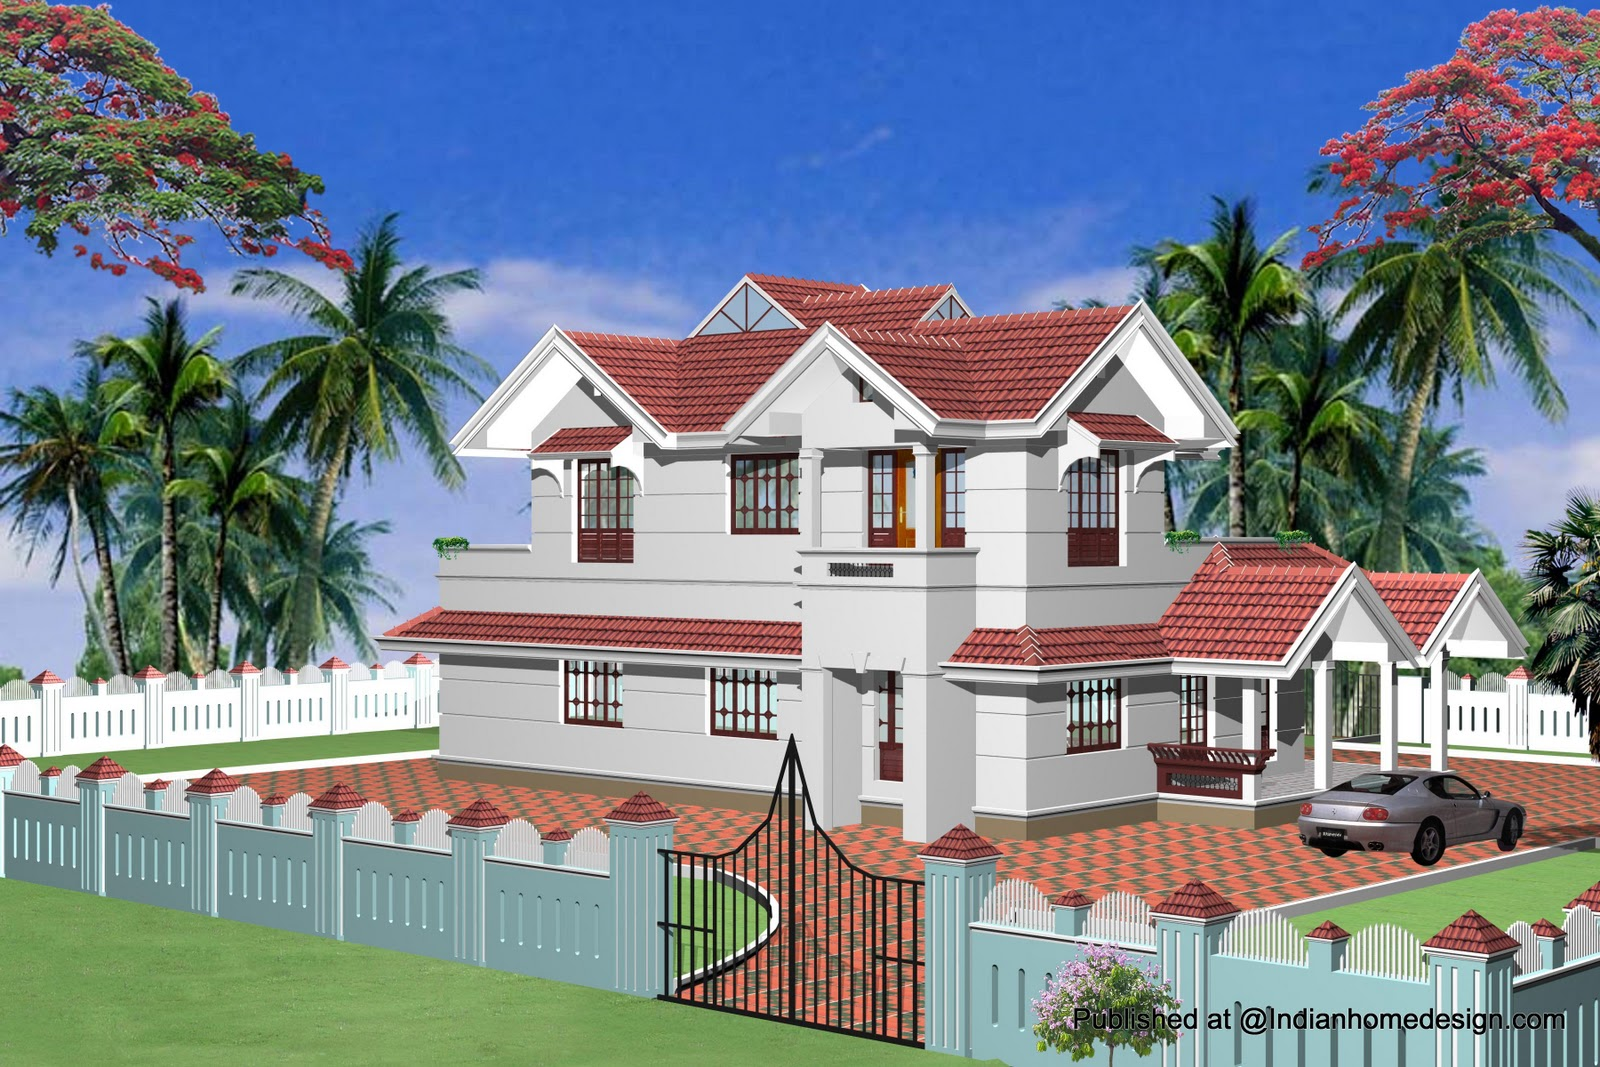 Architectural house plans india omahdesigns net for Best home design